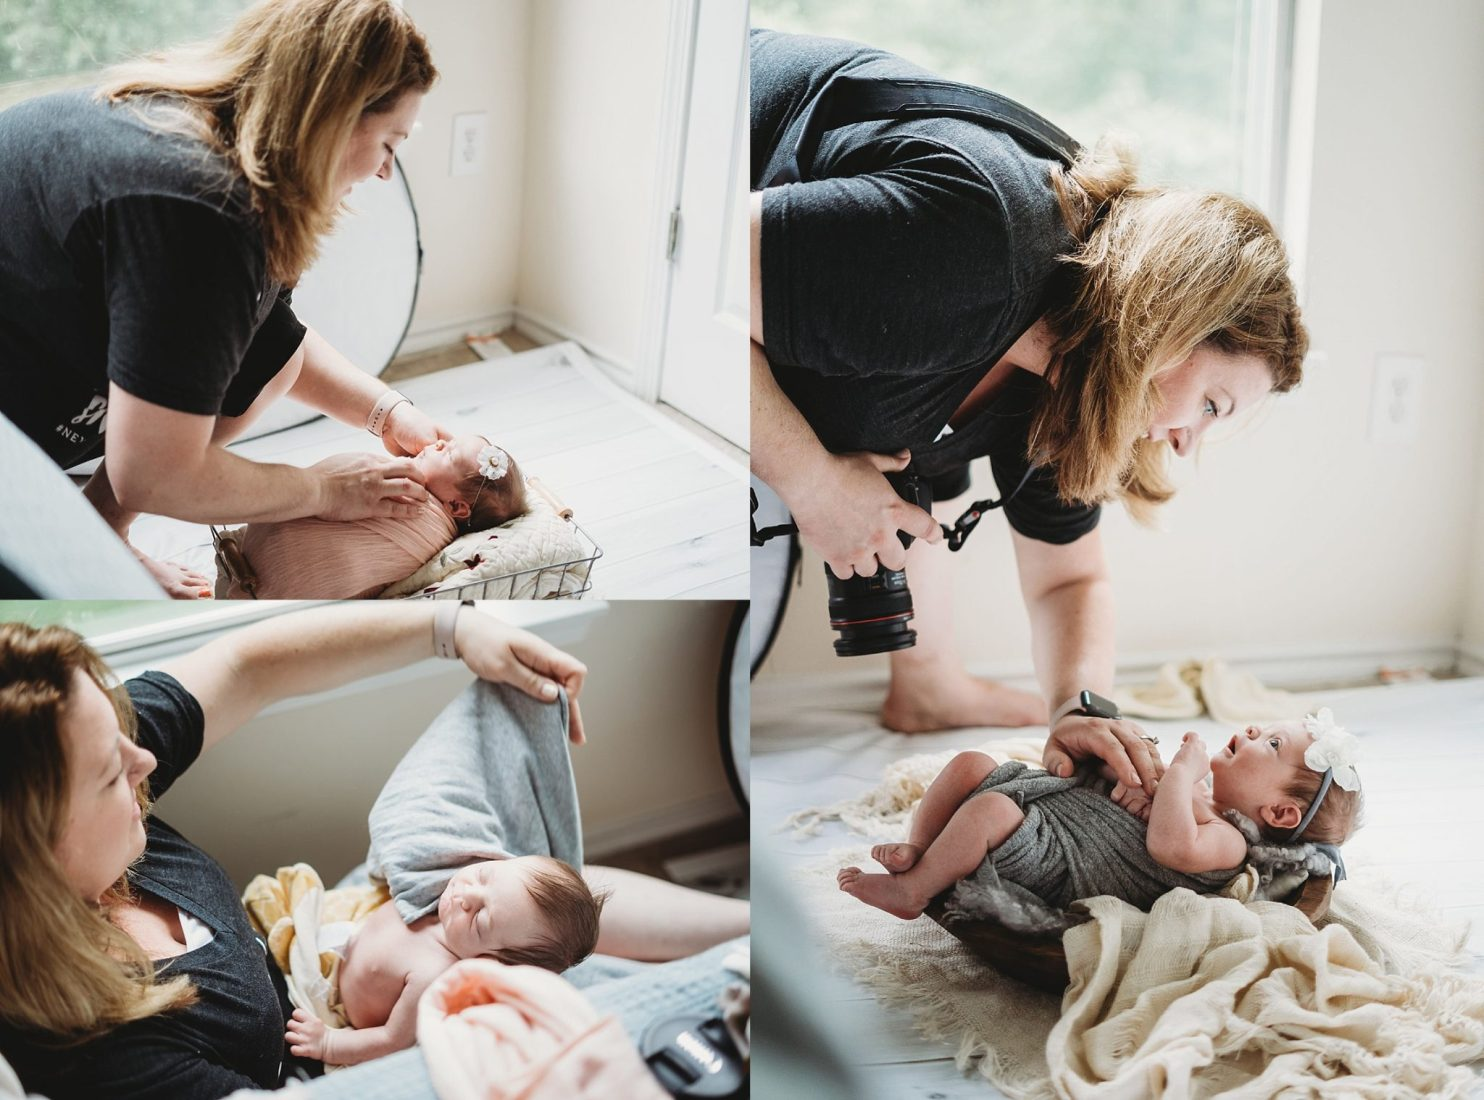 Behind the scene images from Corrina Ann Photography